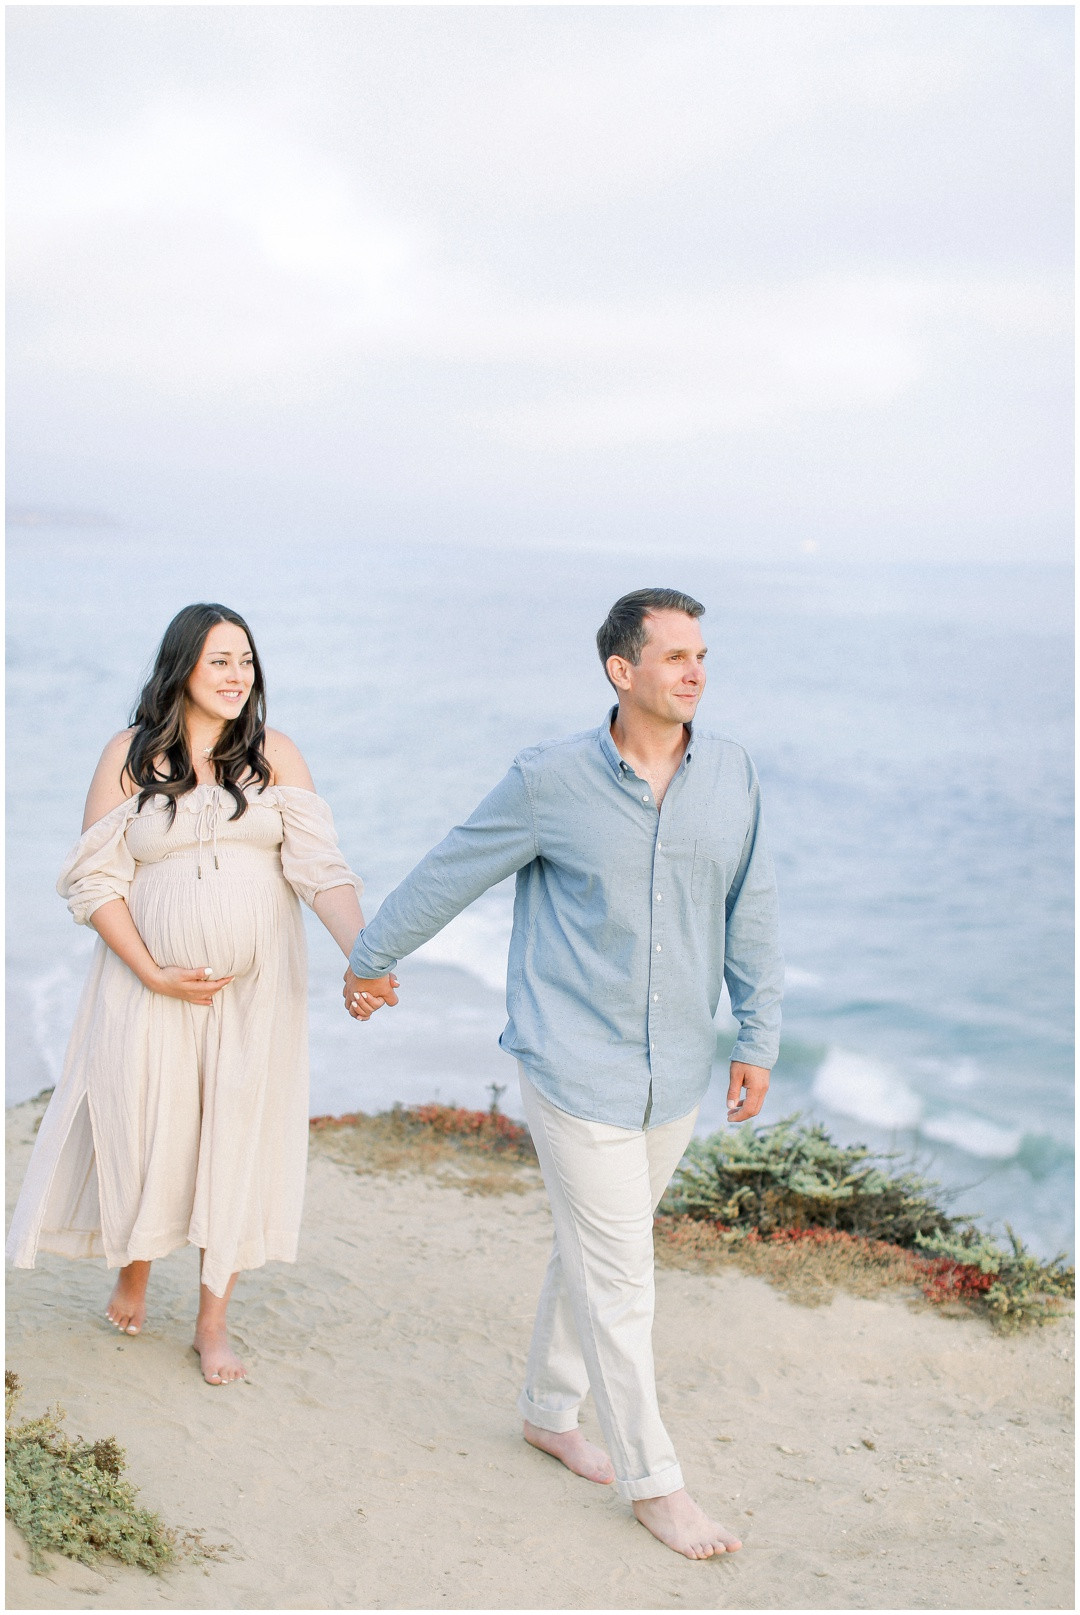 Newport_Beach_Newborn_Light_Airy_Natural_Photographer_Newport_Beach_Photographer_Orange_County_Maternity_Photographer_Cori_Kleckner_Photography_Newport_Beach_Photographer_Candice_Byle_Candice_Fillippini_Kevin_Fillippini__4151.jpg